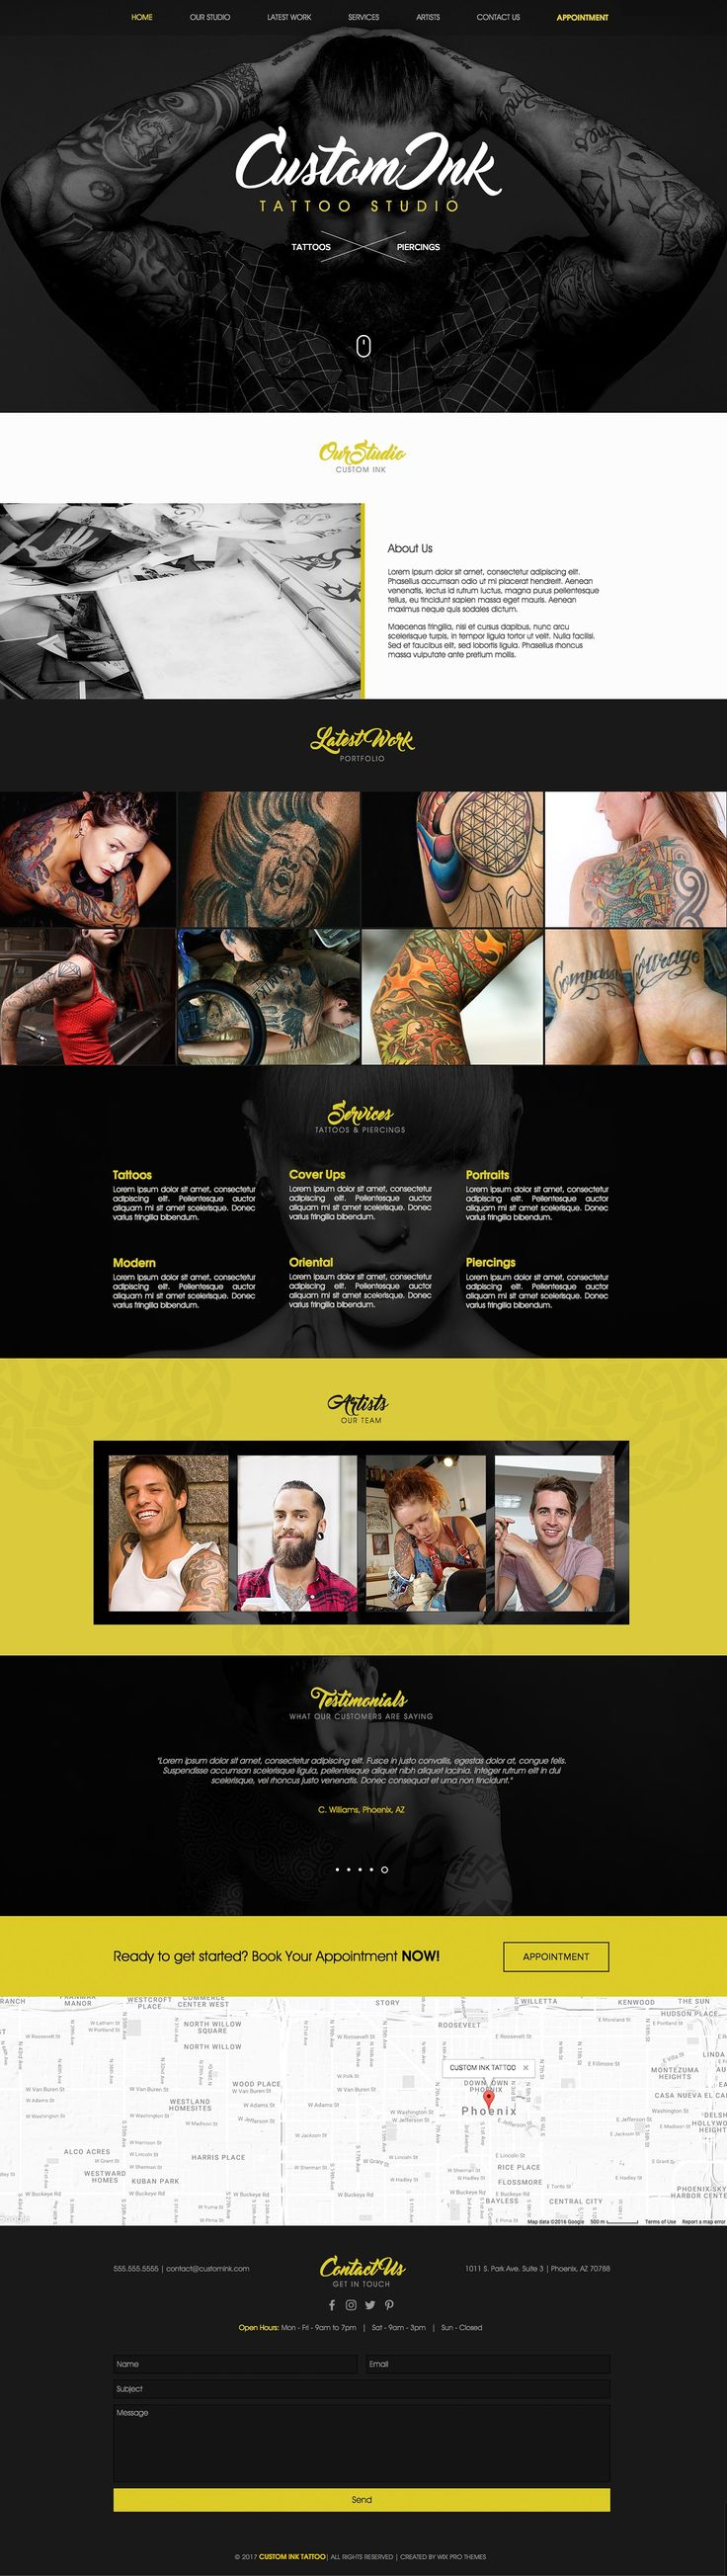 resignation letter samples with reason%0A Tattoo designs website template wix general letter of resignation best     tattoo websites ideas on pinterest